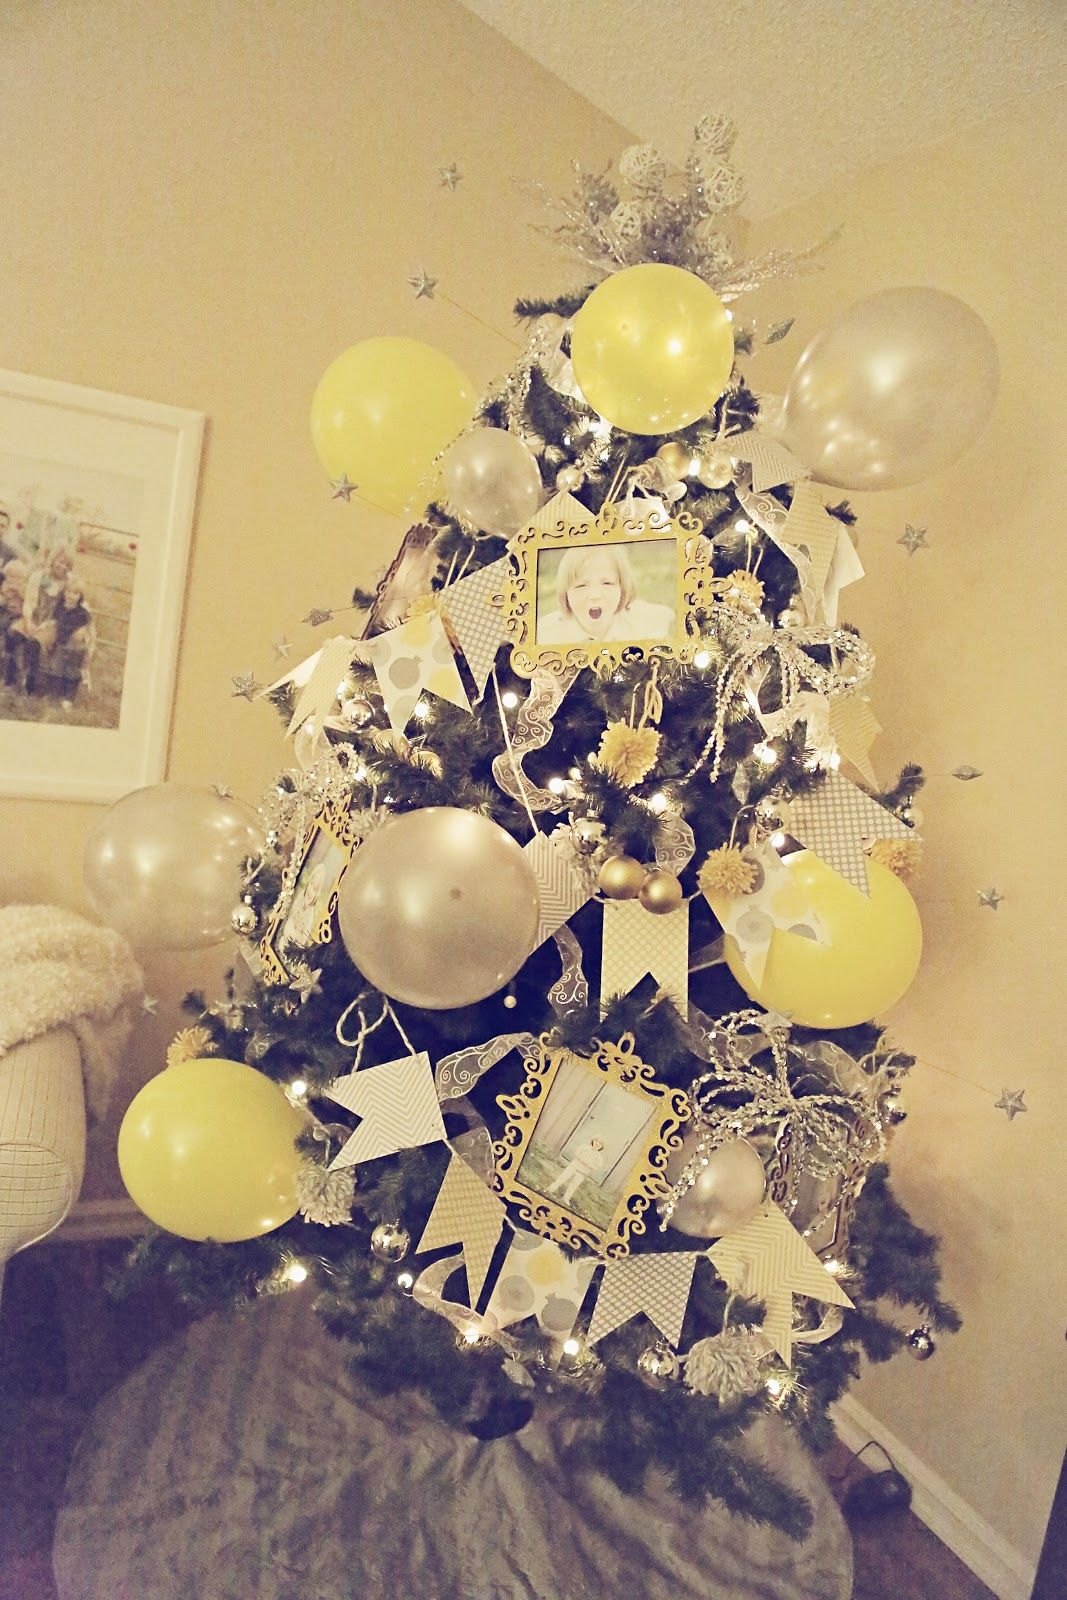 A birthday tree for those December/close to Christmas